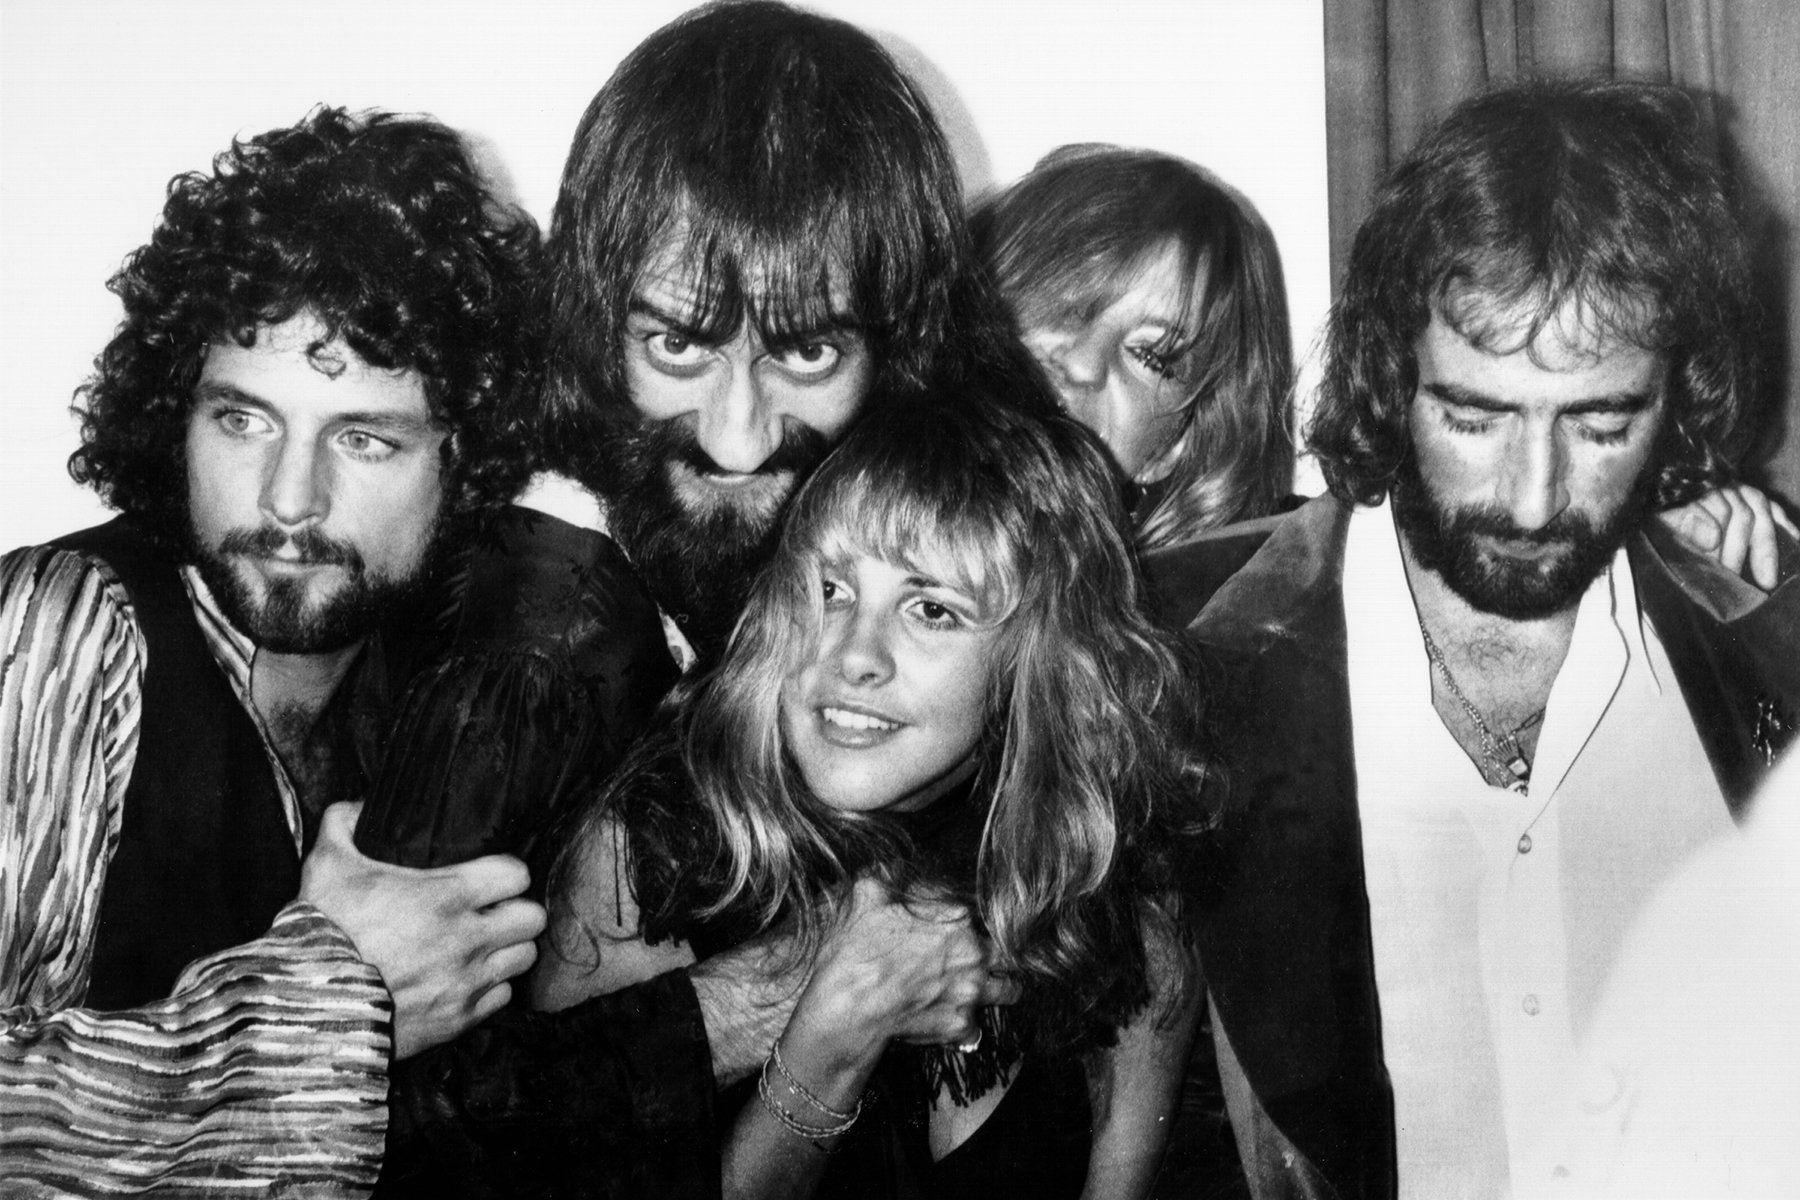 RS Charts: Fleetwood Mac's 'Dreams' Skateboards to Number Two